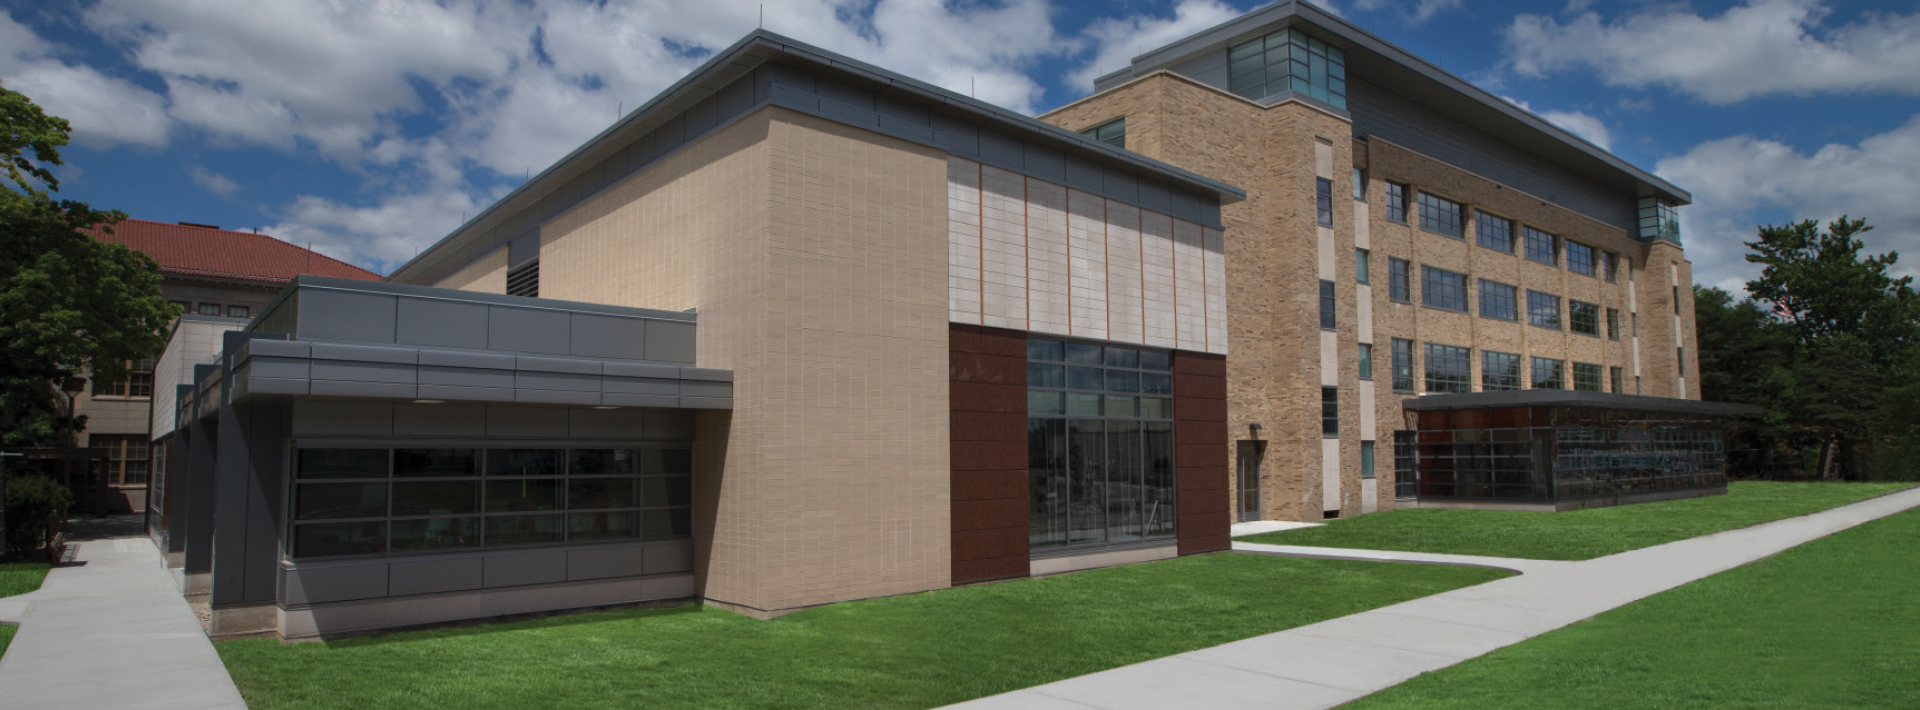 Newly Named Michael & Sara Kuhlin Center